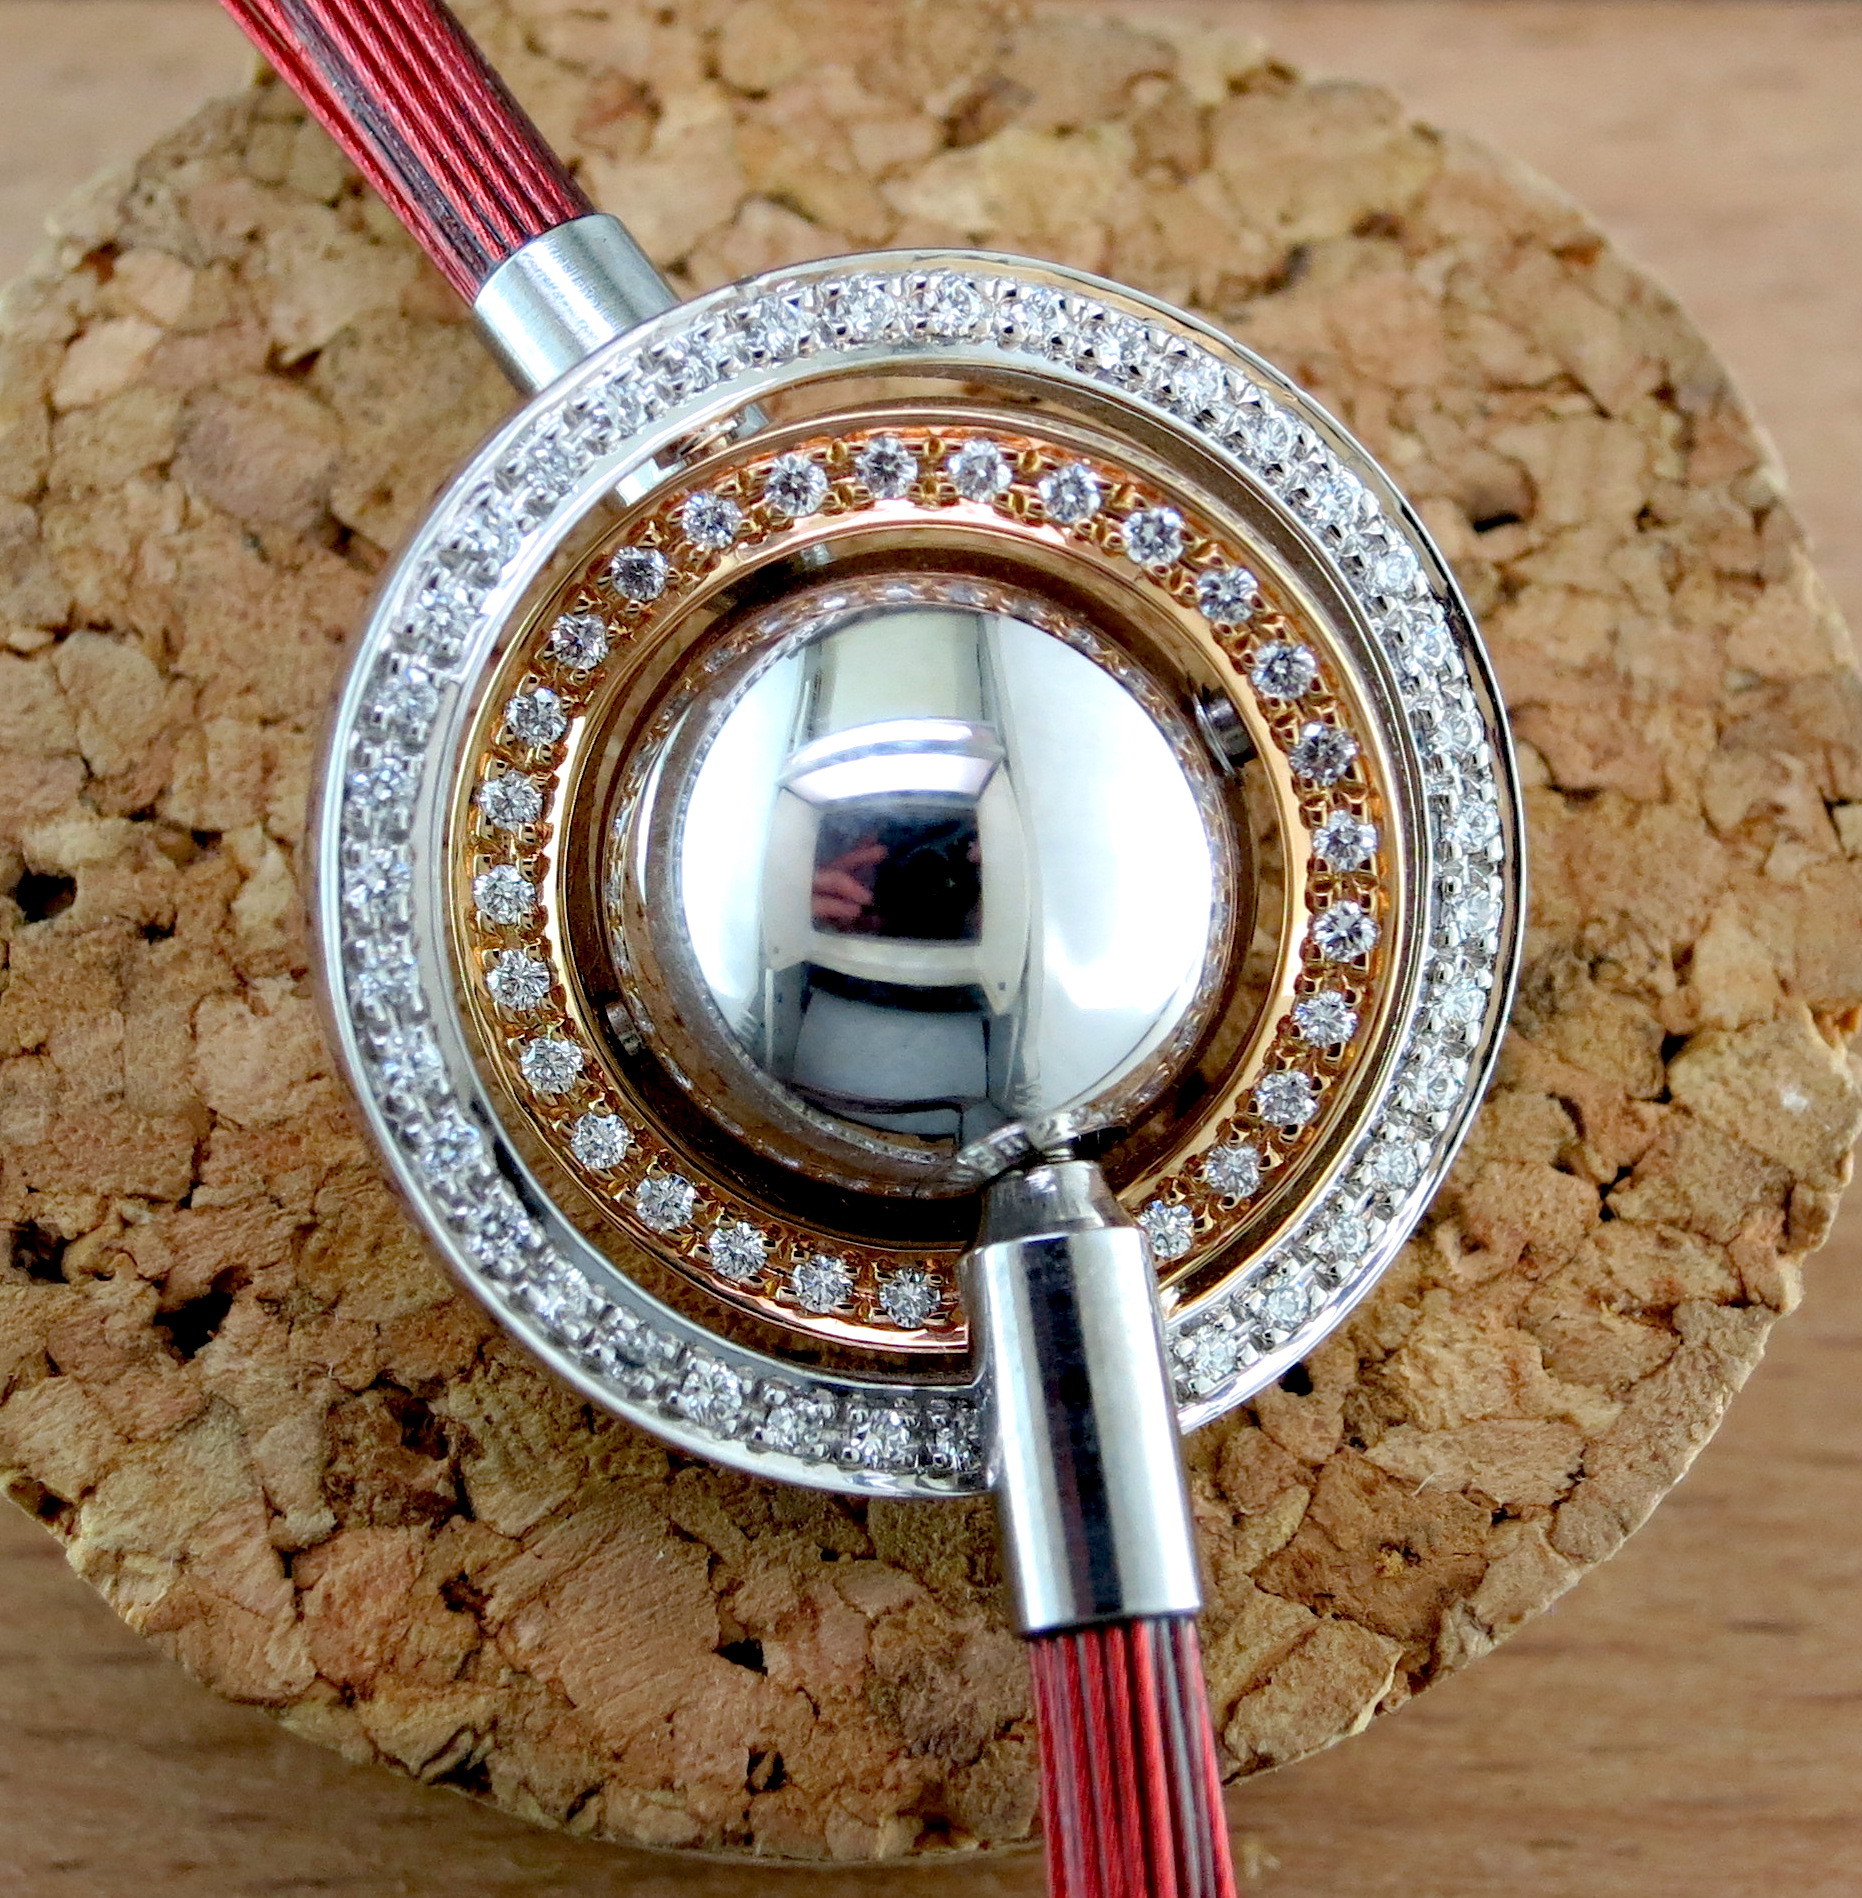 18 Karat White Gold, 18 Karat Rose Gold, and Diamond Removable Charm on an Amber NylonNecklace (S1673 and S16790)